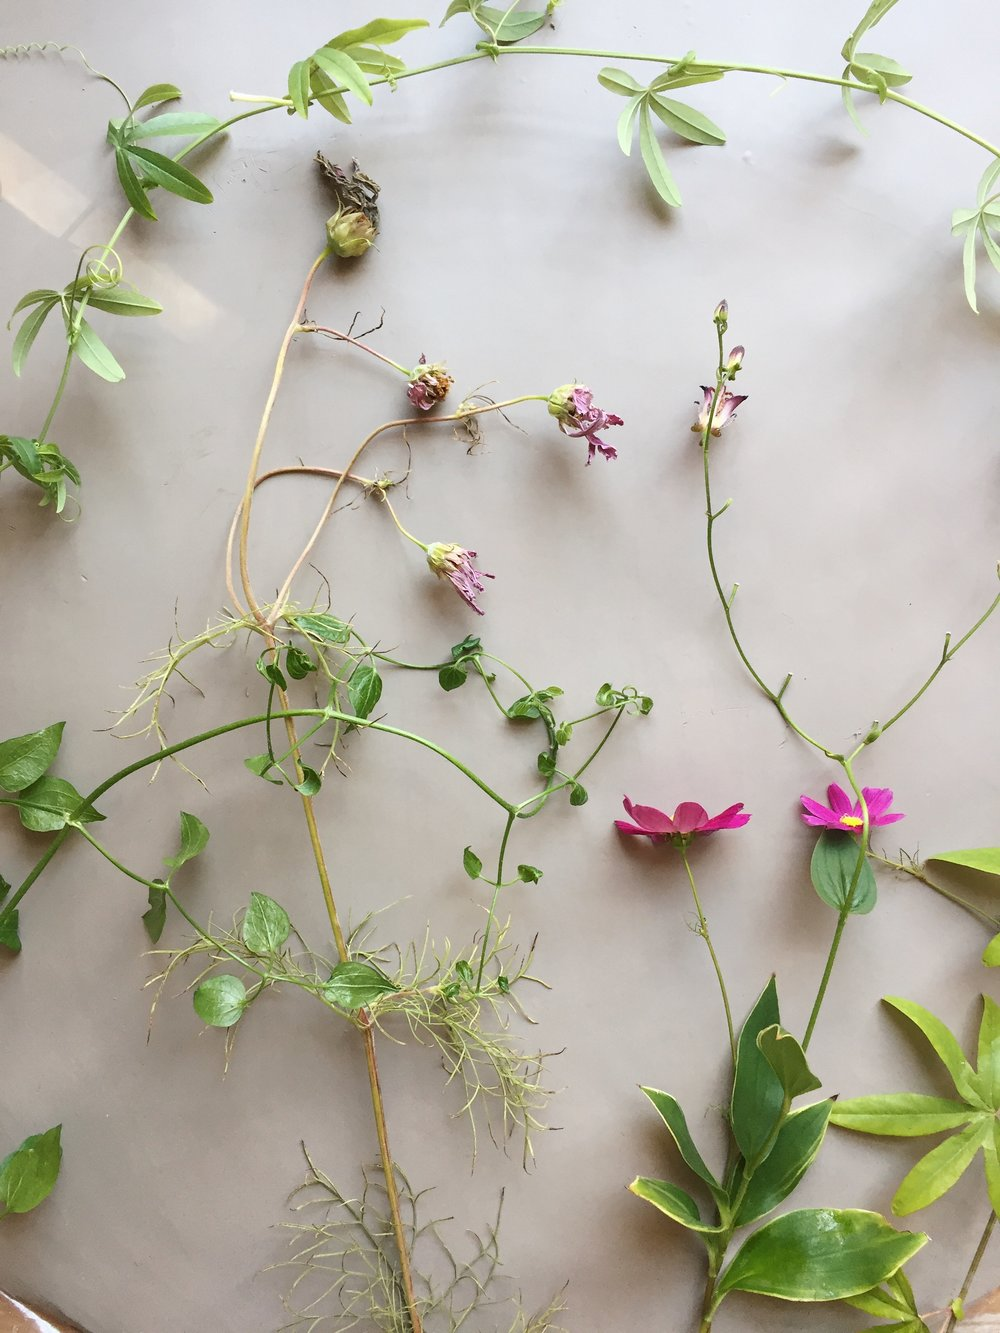 - the Dorene collection consist of the following flowers:passion flower, digitalis, comfrey, anemone,  callicarpa, clematis, rue, scabiosa,lisianthis, marigold, evergreen candy tuft, hellebores, and queen anne lace